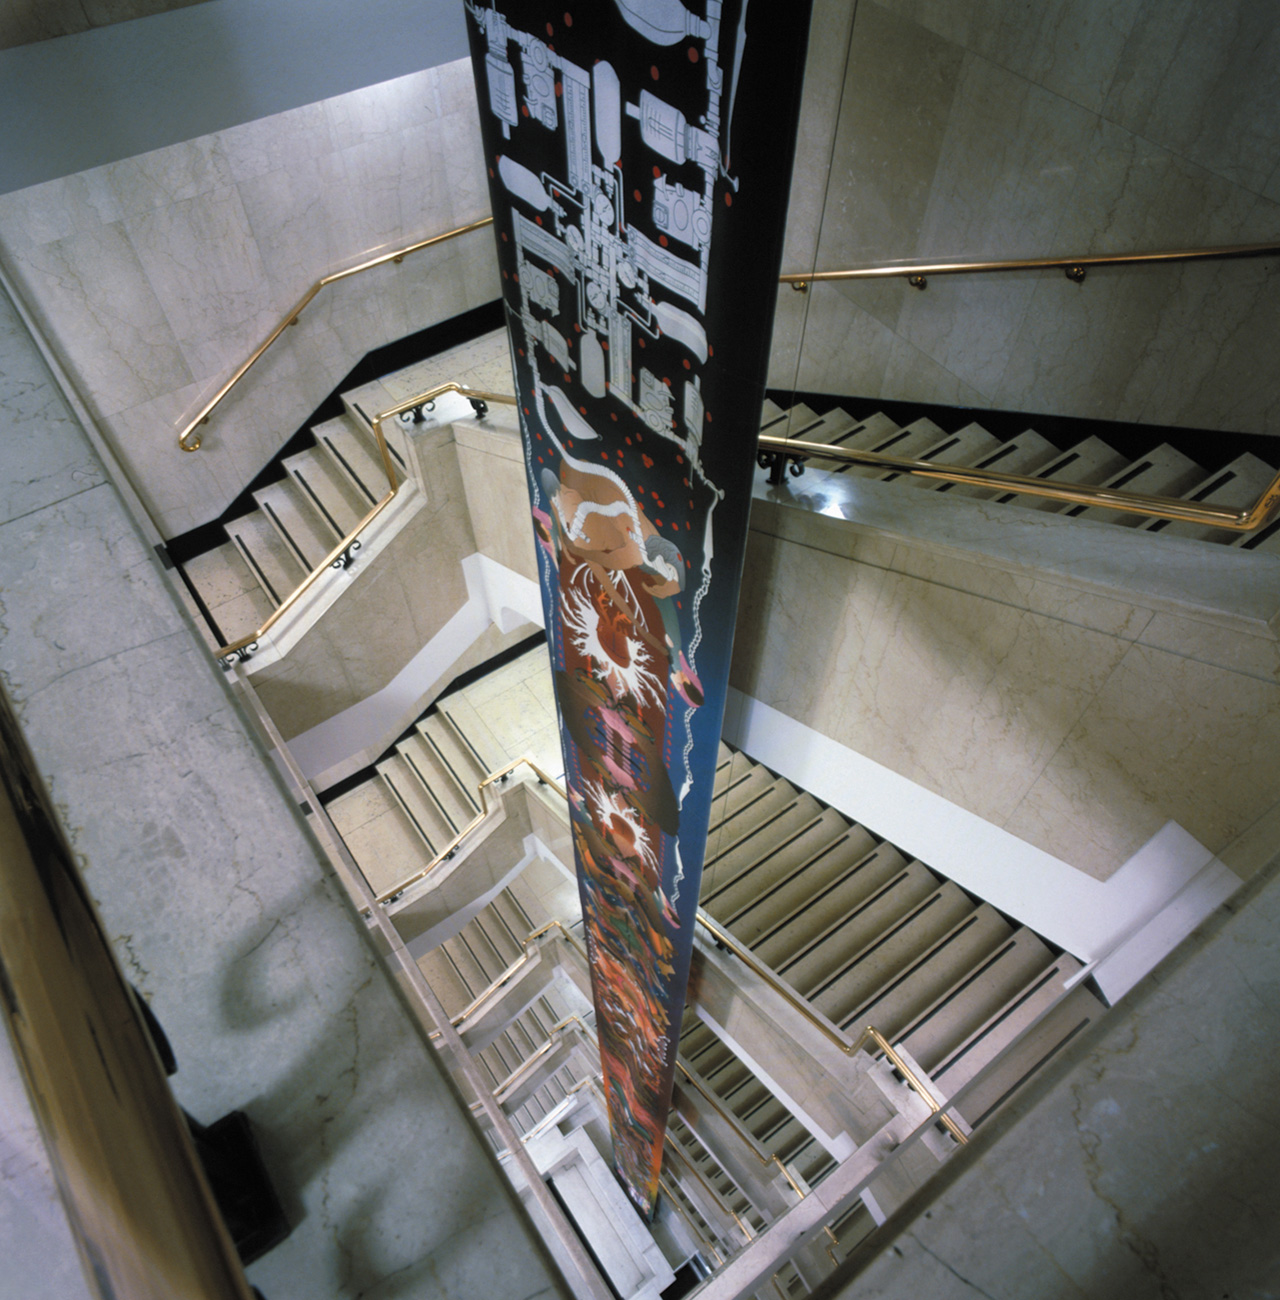 Double-sided print on fiberglass fabric | 2500 x 120 cm | Installation view, The Wellcome Trust Building, London | 2001